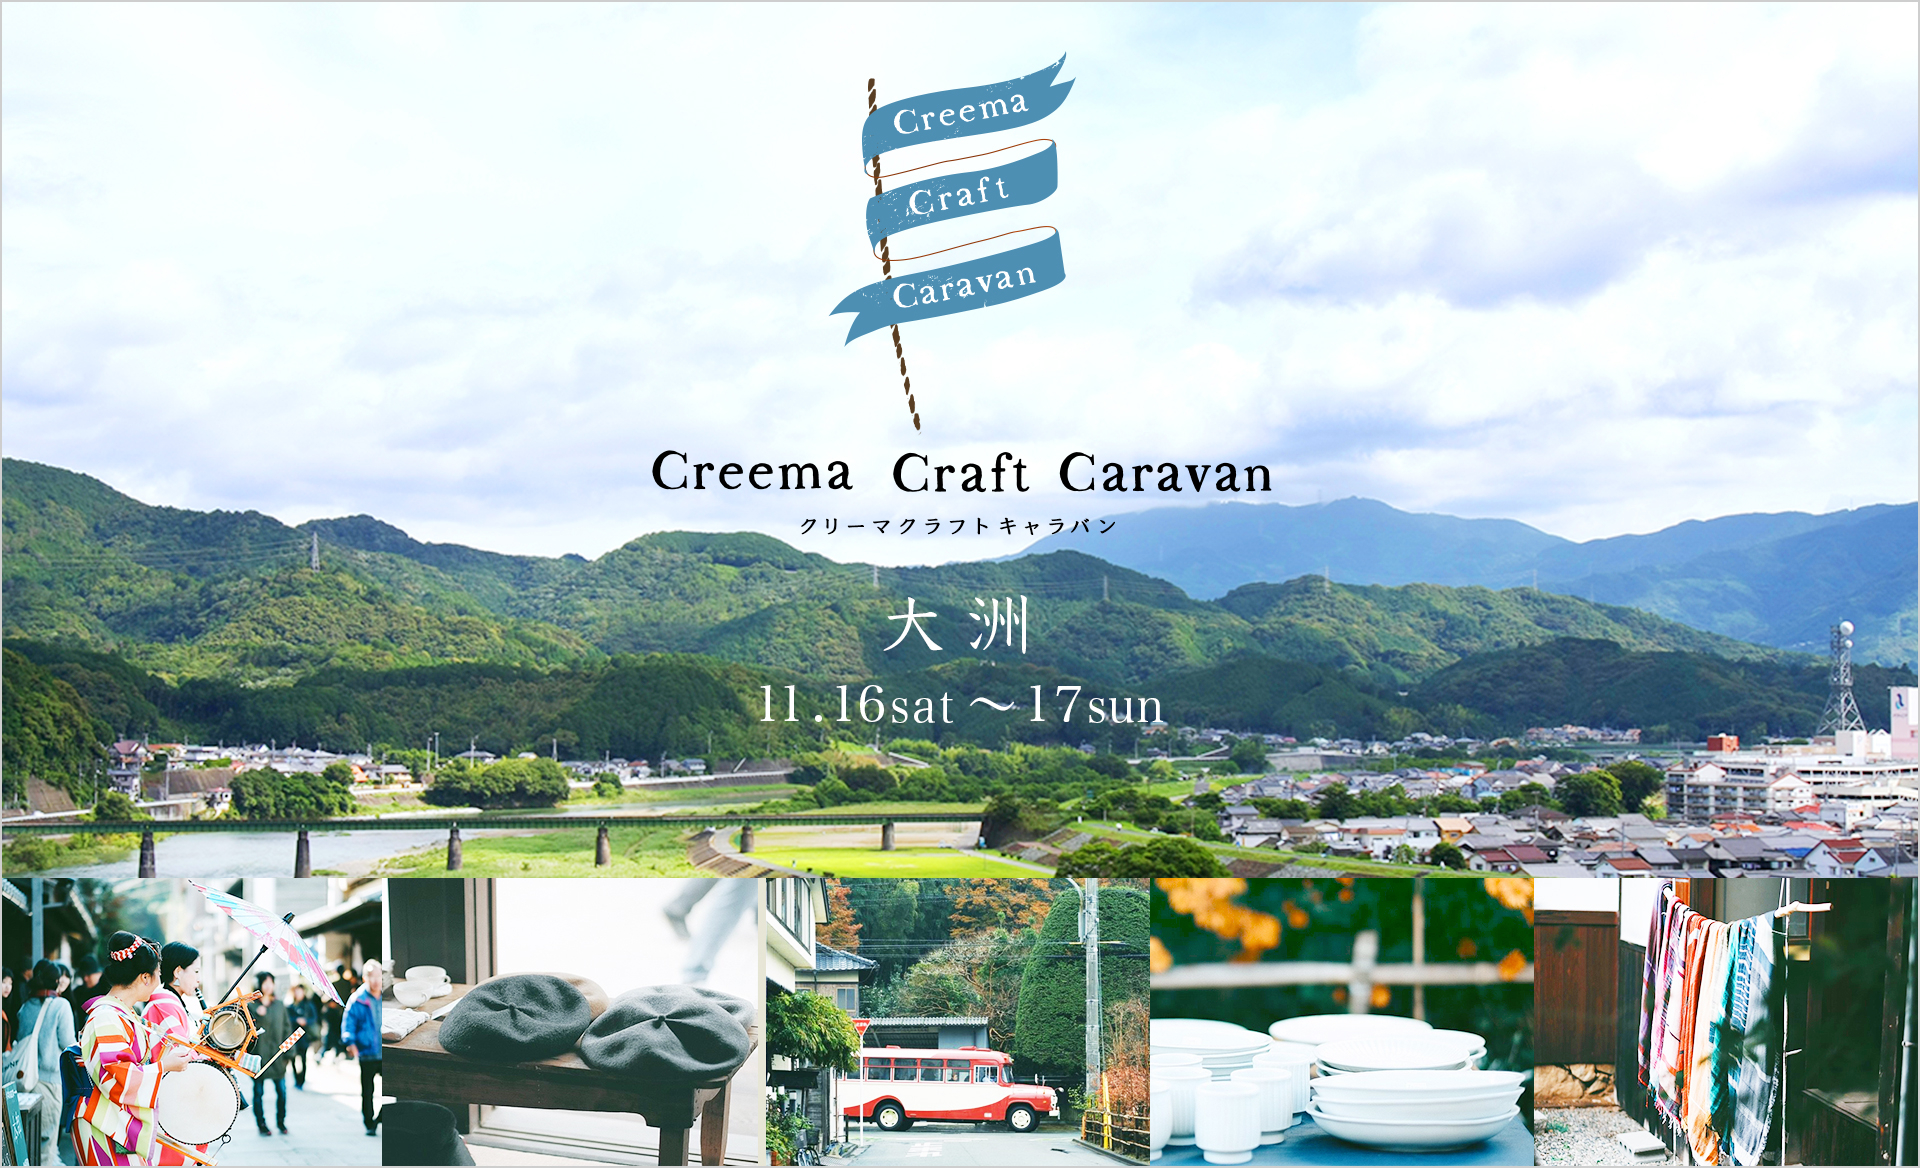 Creema Craft Caravan in 大洲